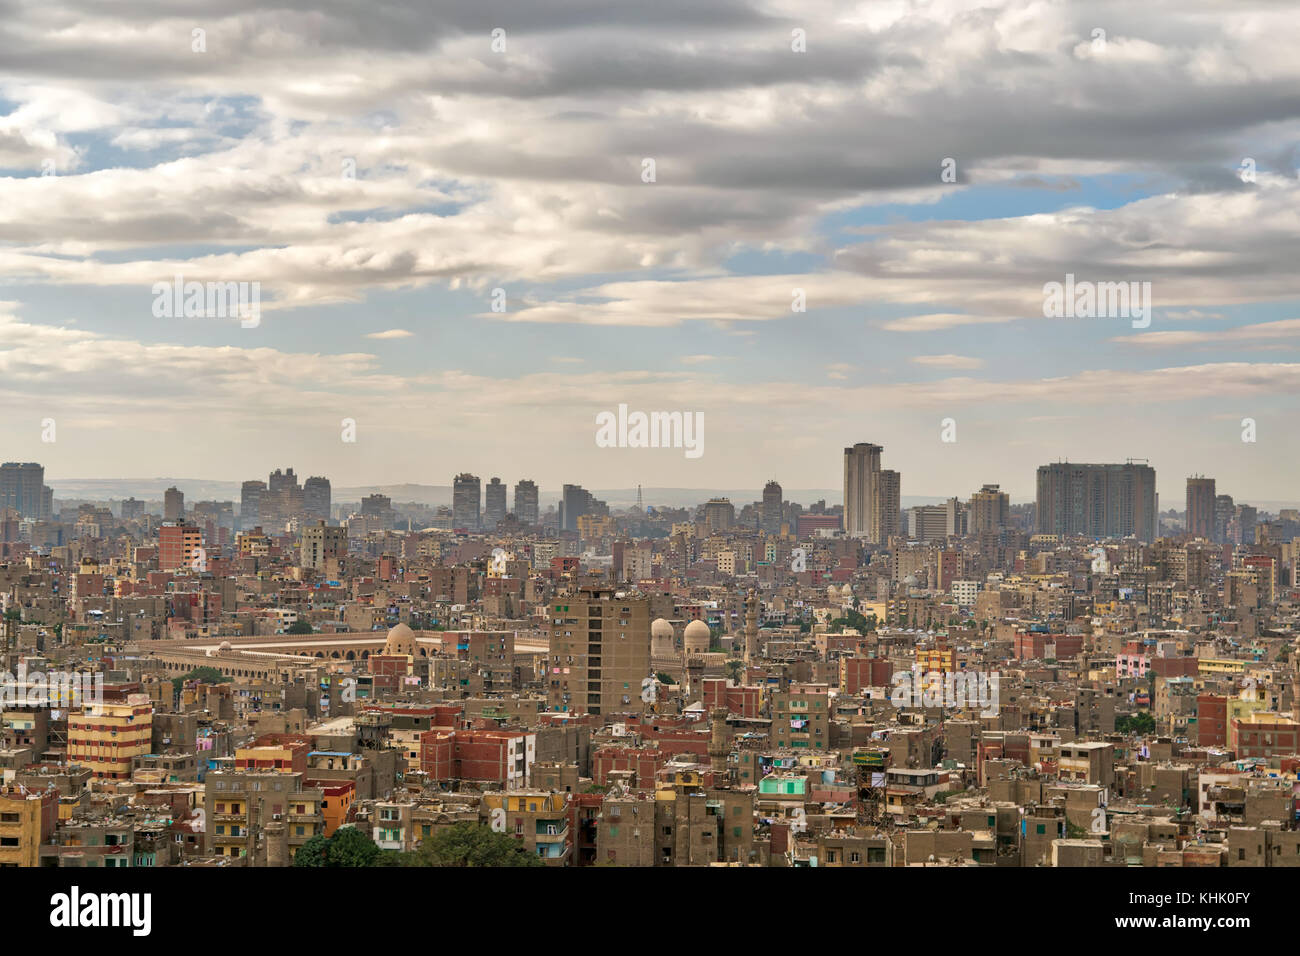 Aerial cityscape view of old Cairo, Egypt with old buildings and Ibn Tulun Mosque in far distance from the Citadel - Stock Image